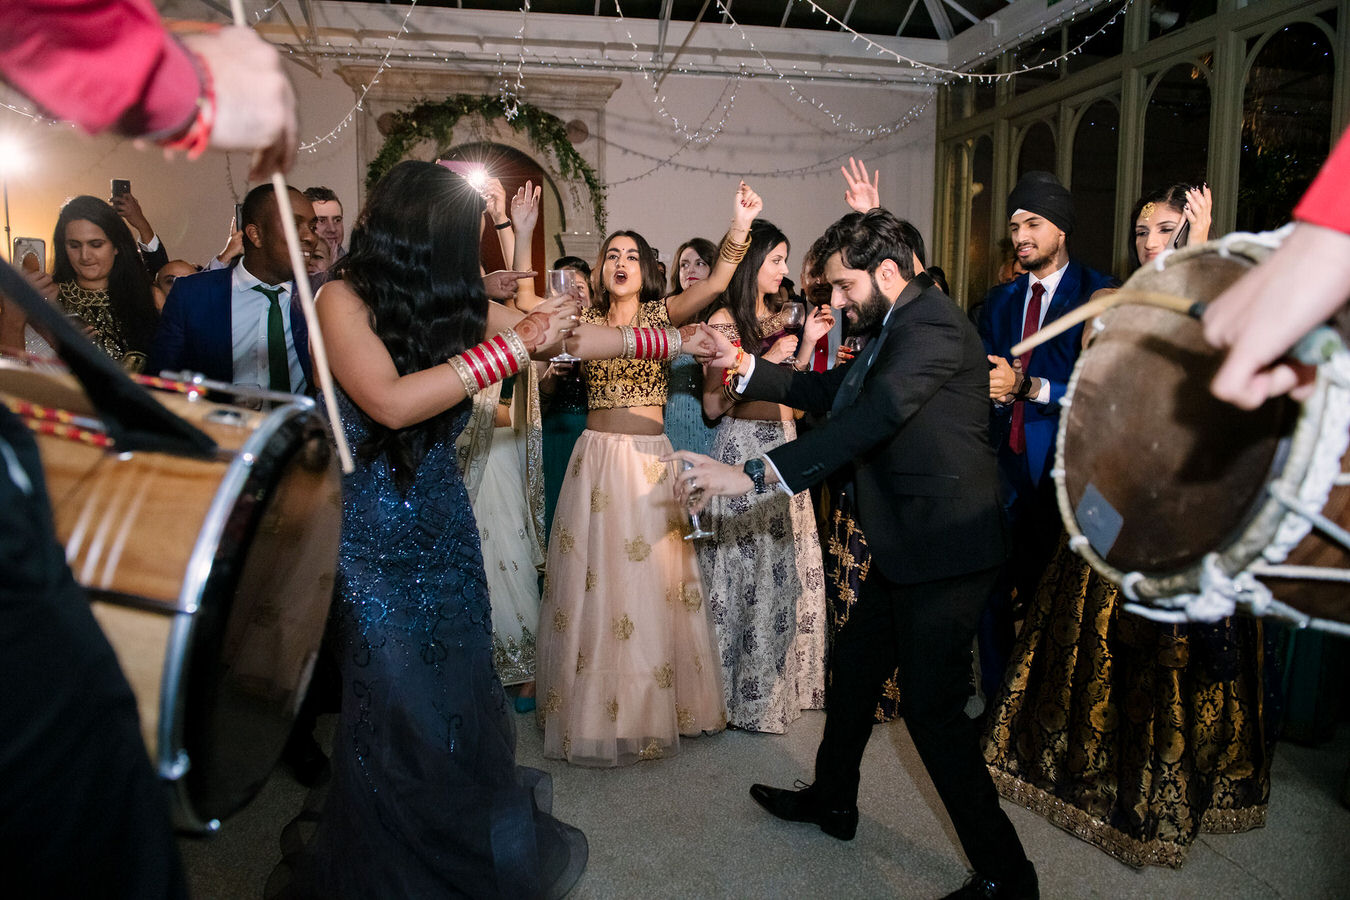 Asian wedding couple dancing with glasses in their hands along with other guests. Asian Dhol drummers are playing in the foreground.